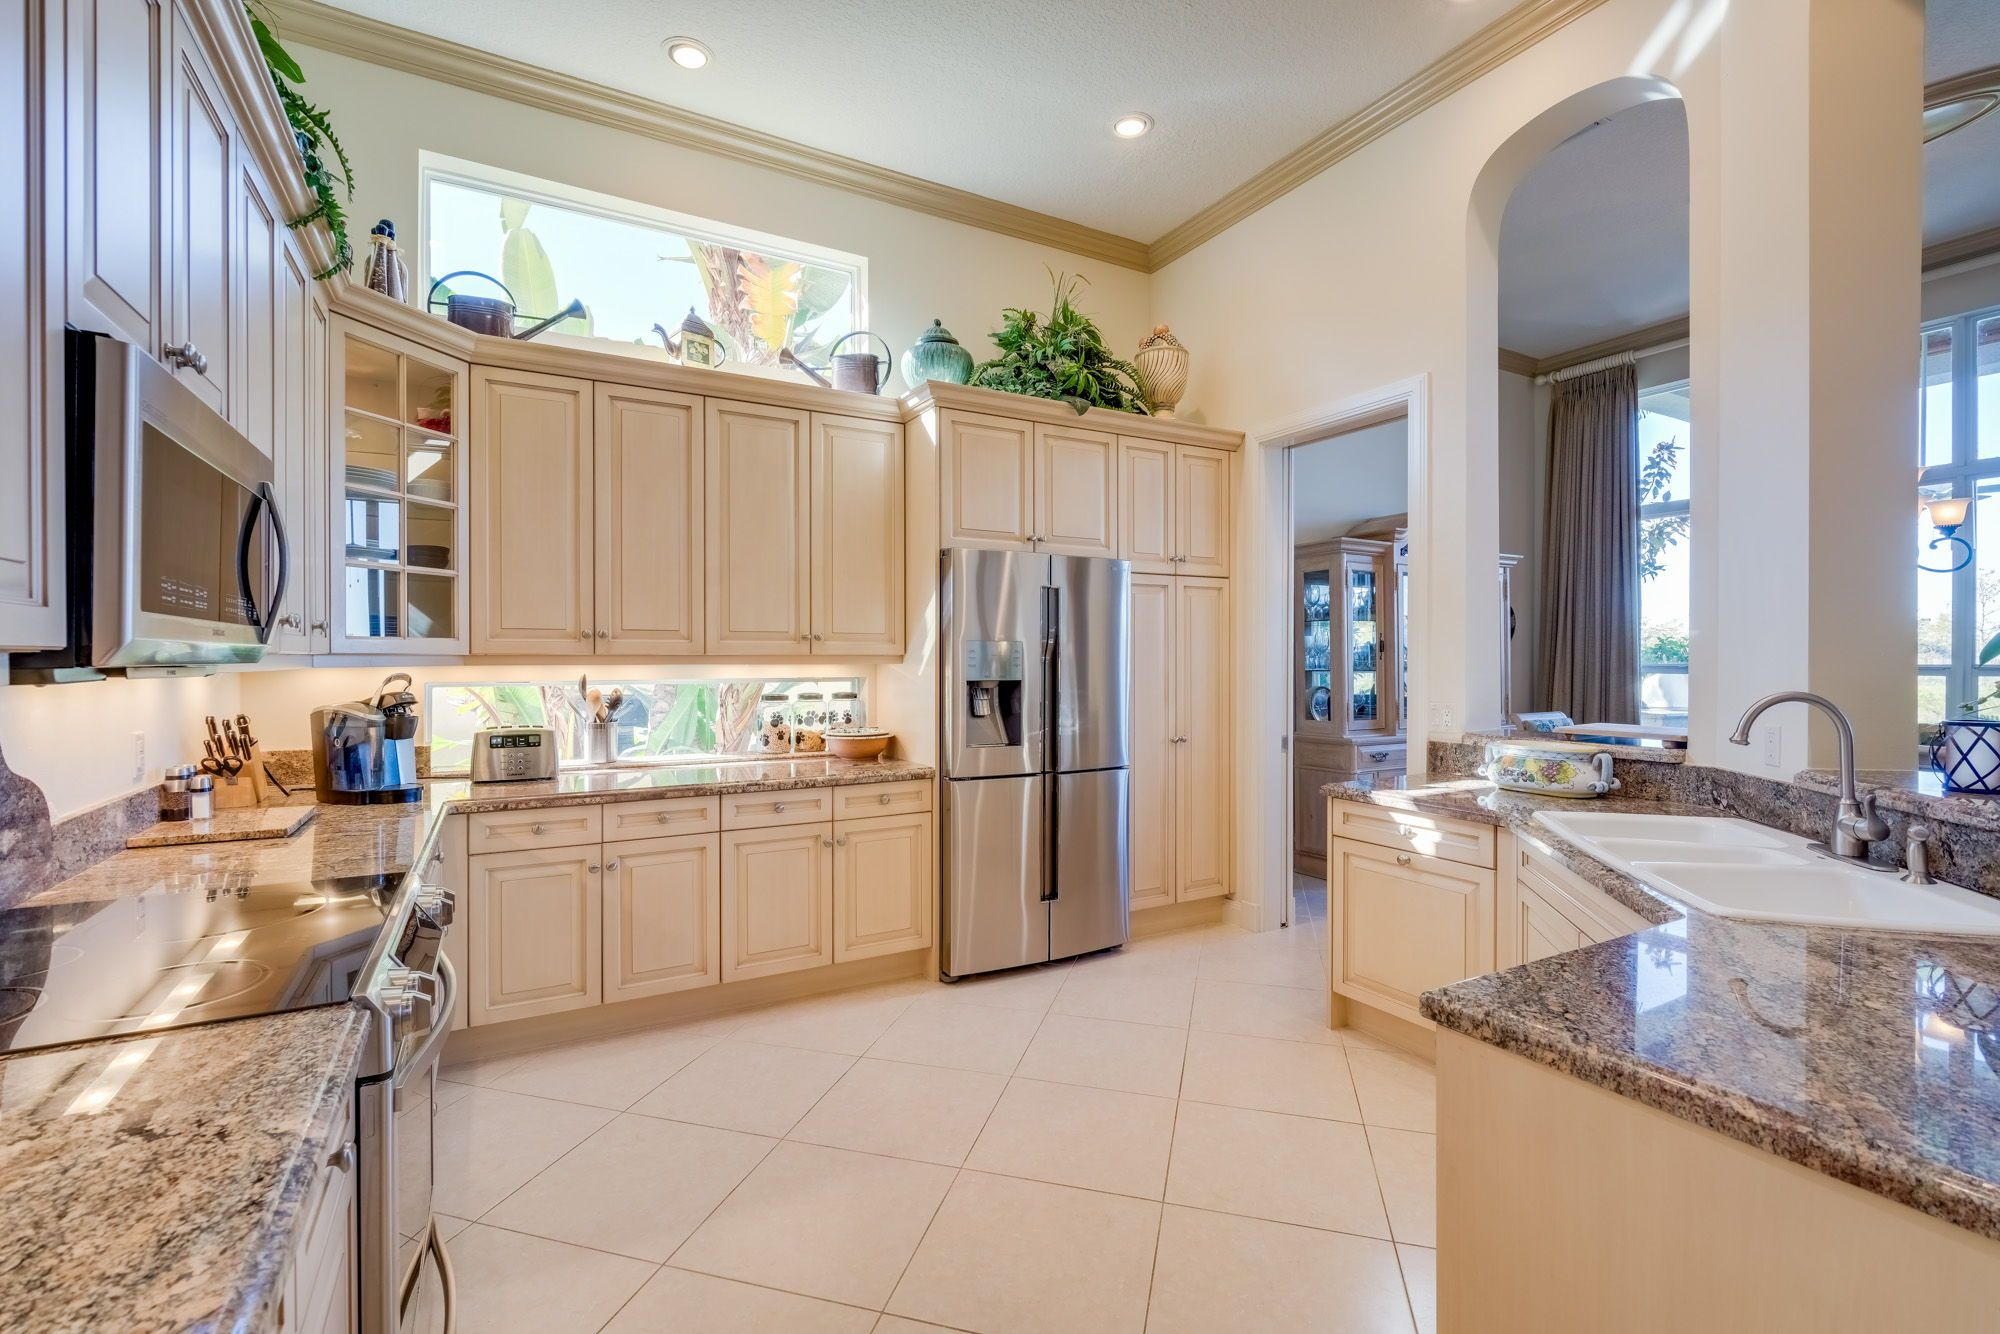 The kitchen is openconcept and has granite countertops ud tall